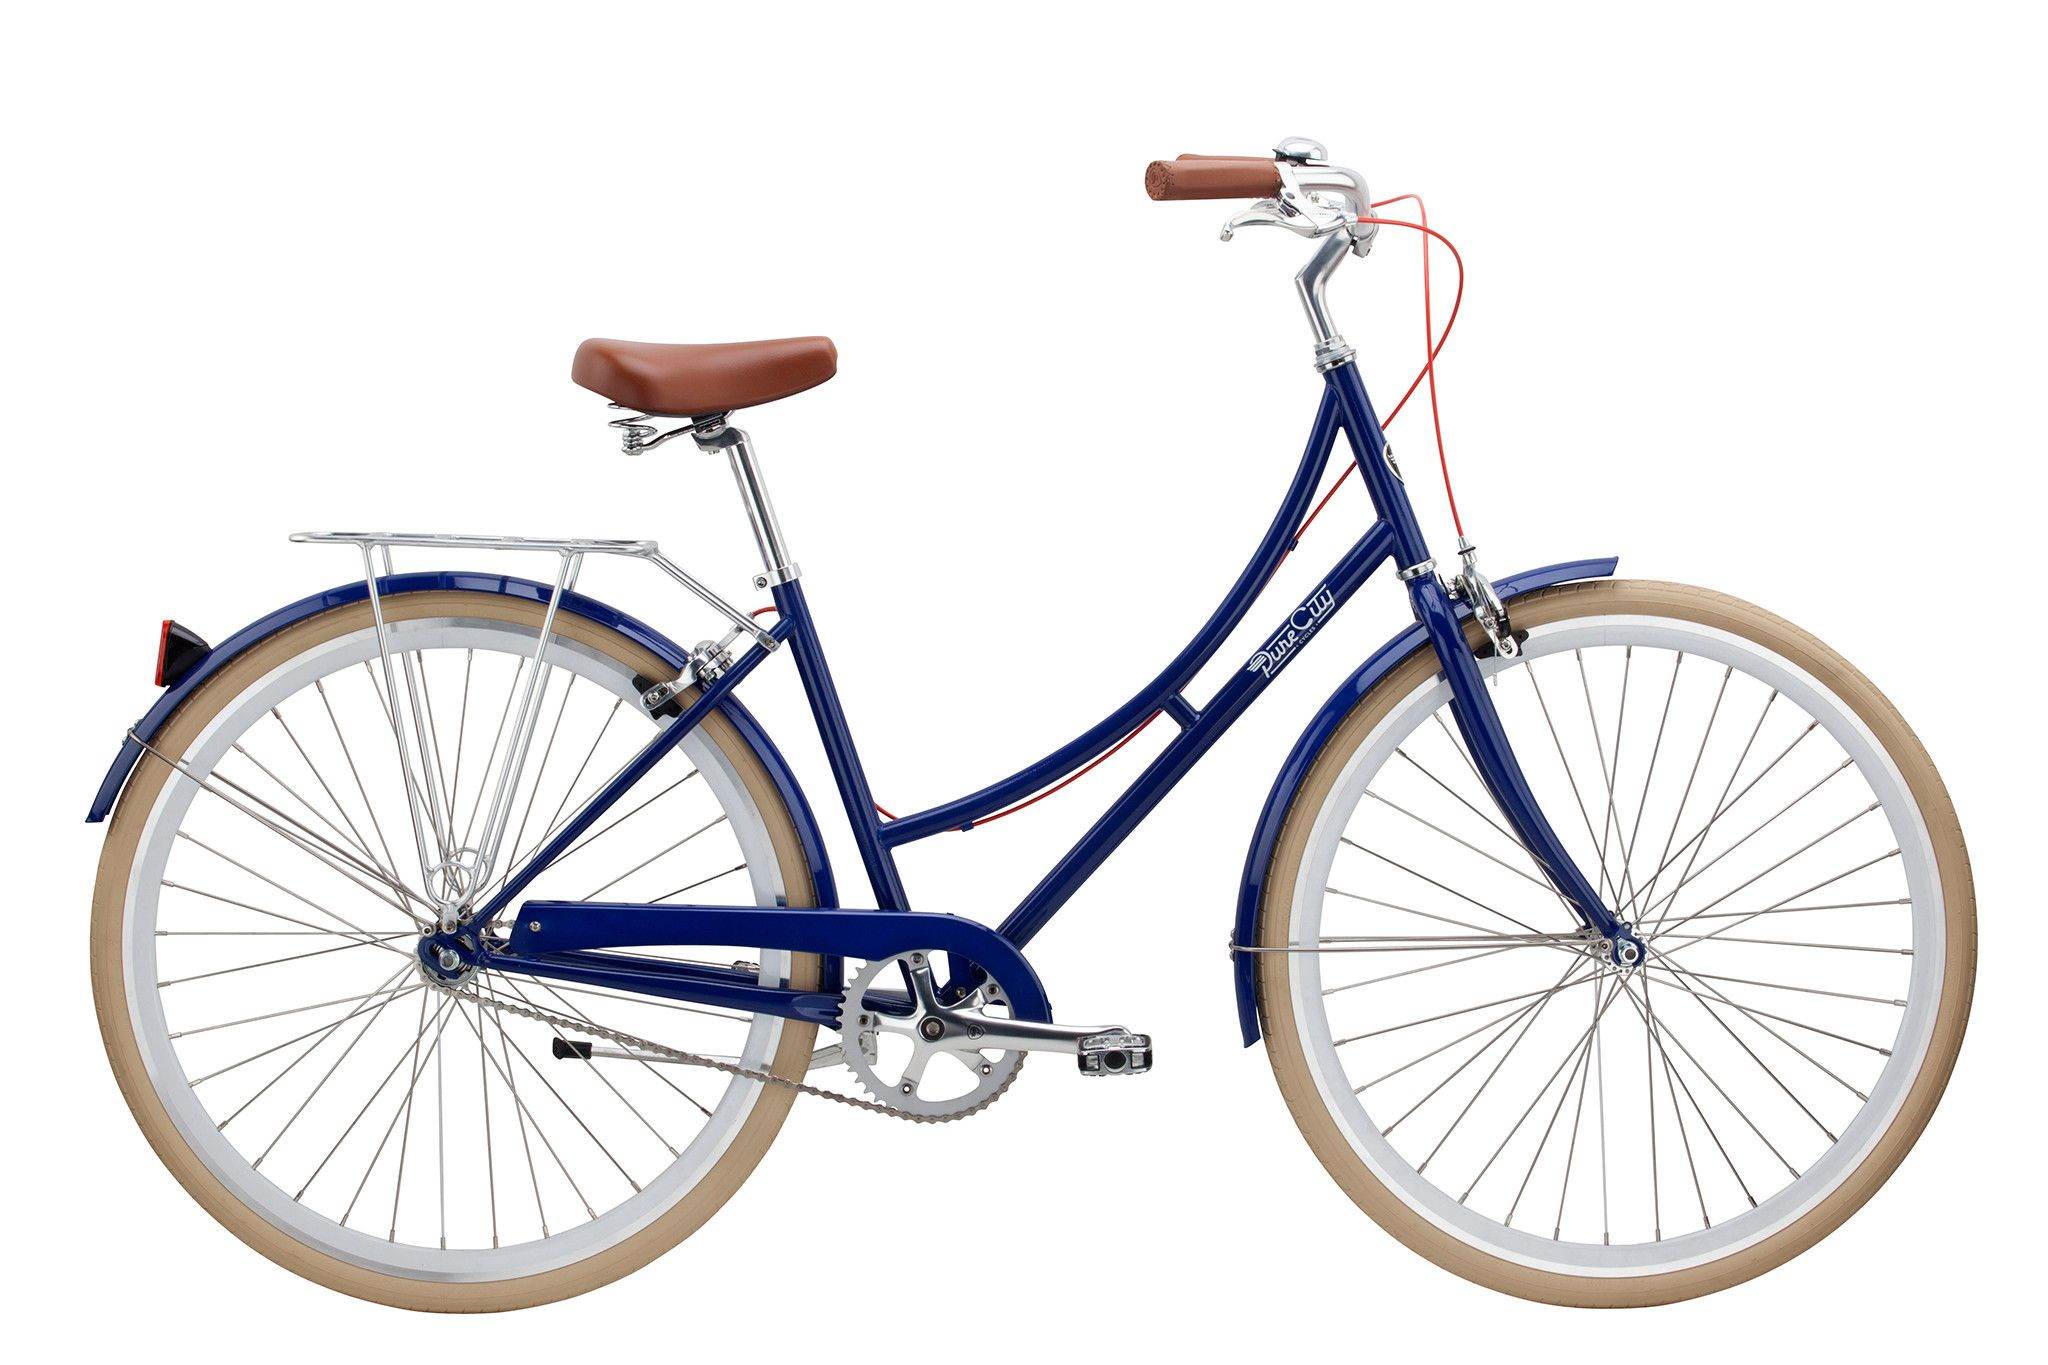 ba812d0a8d2 Newbury   Easy Rider   Commuter bike, Pure products, Bicycle